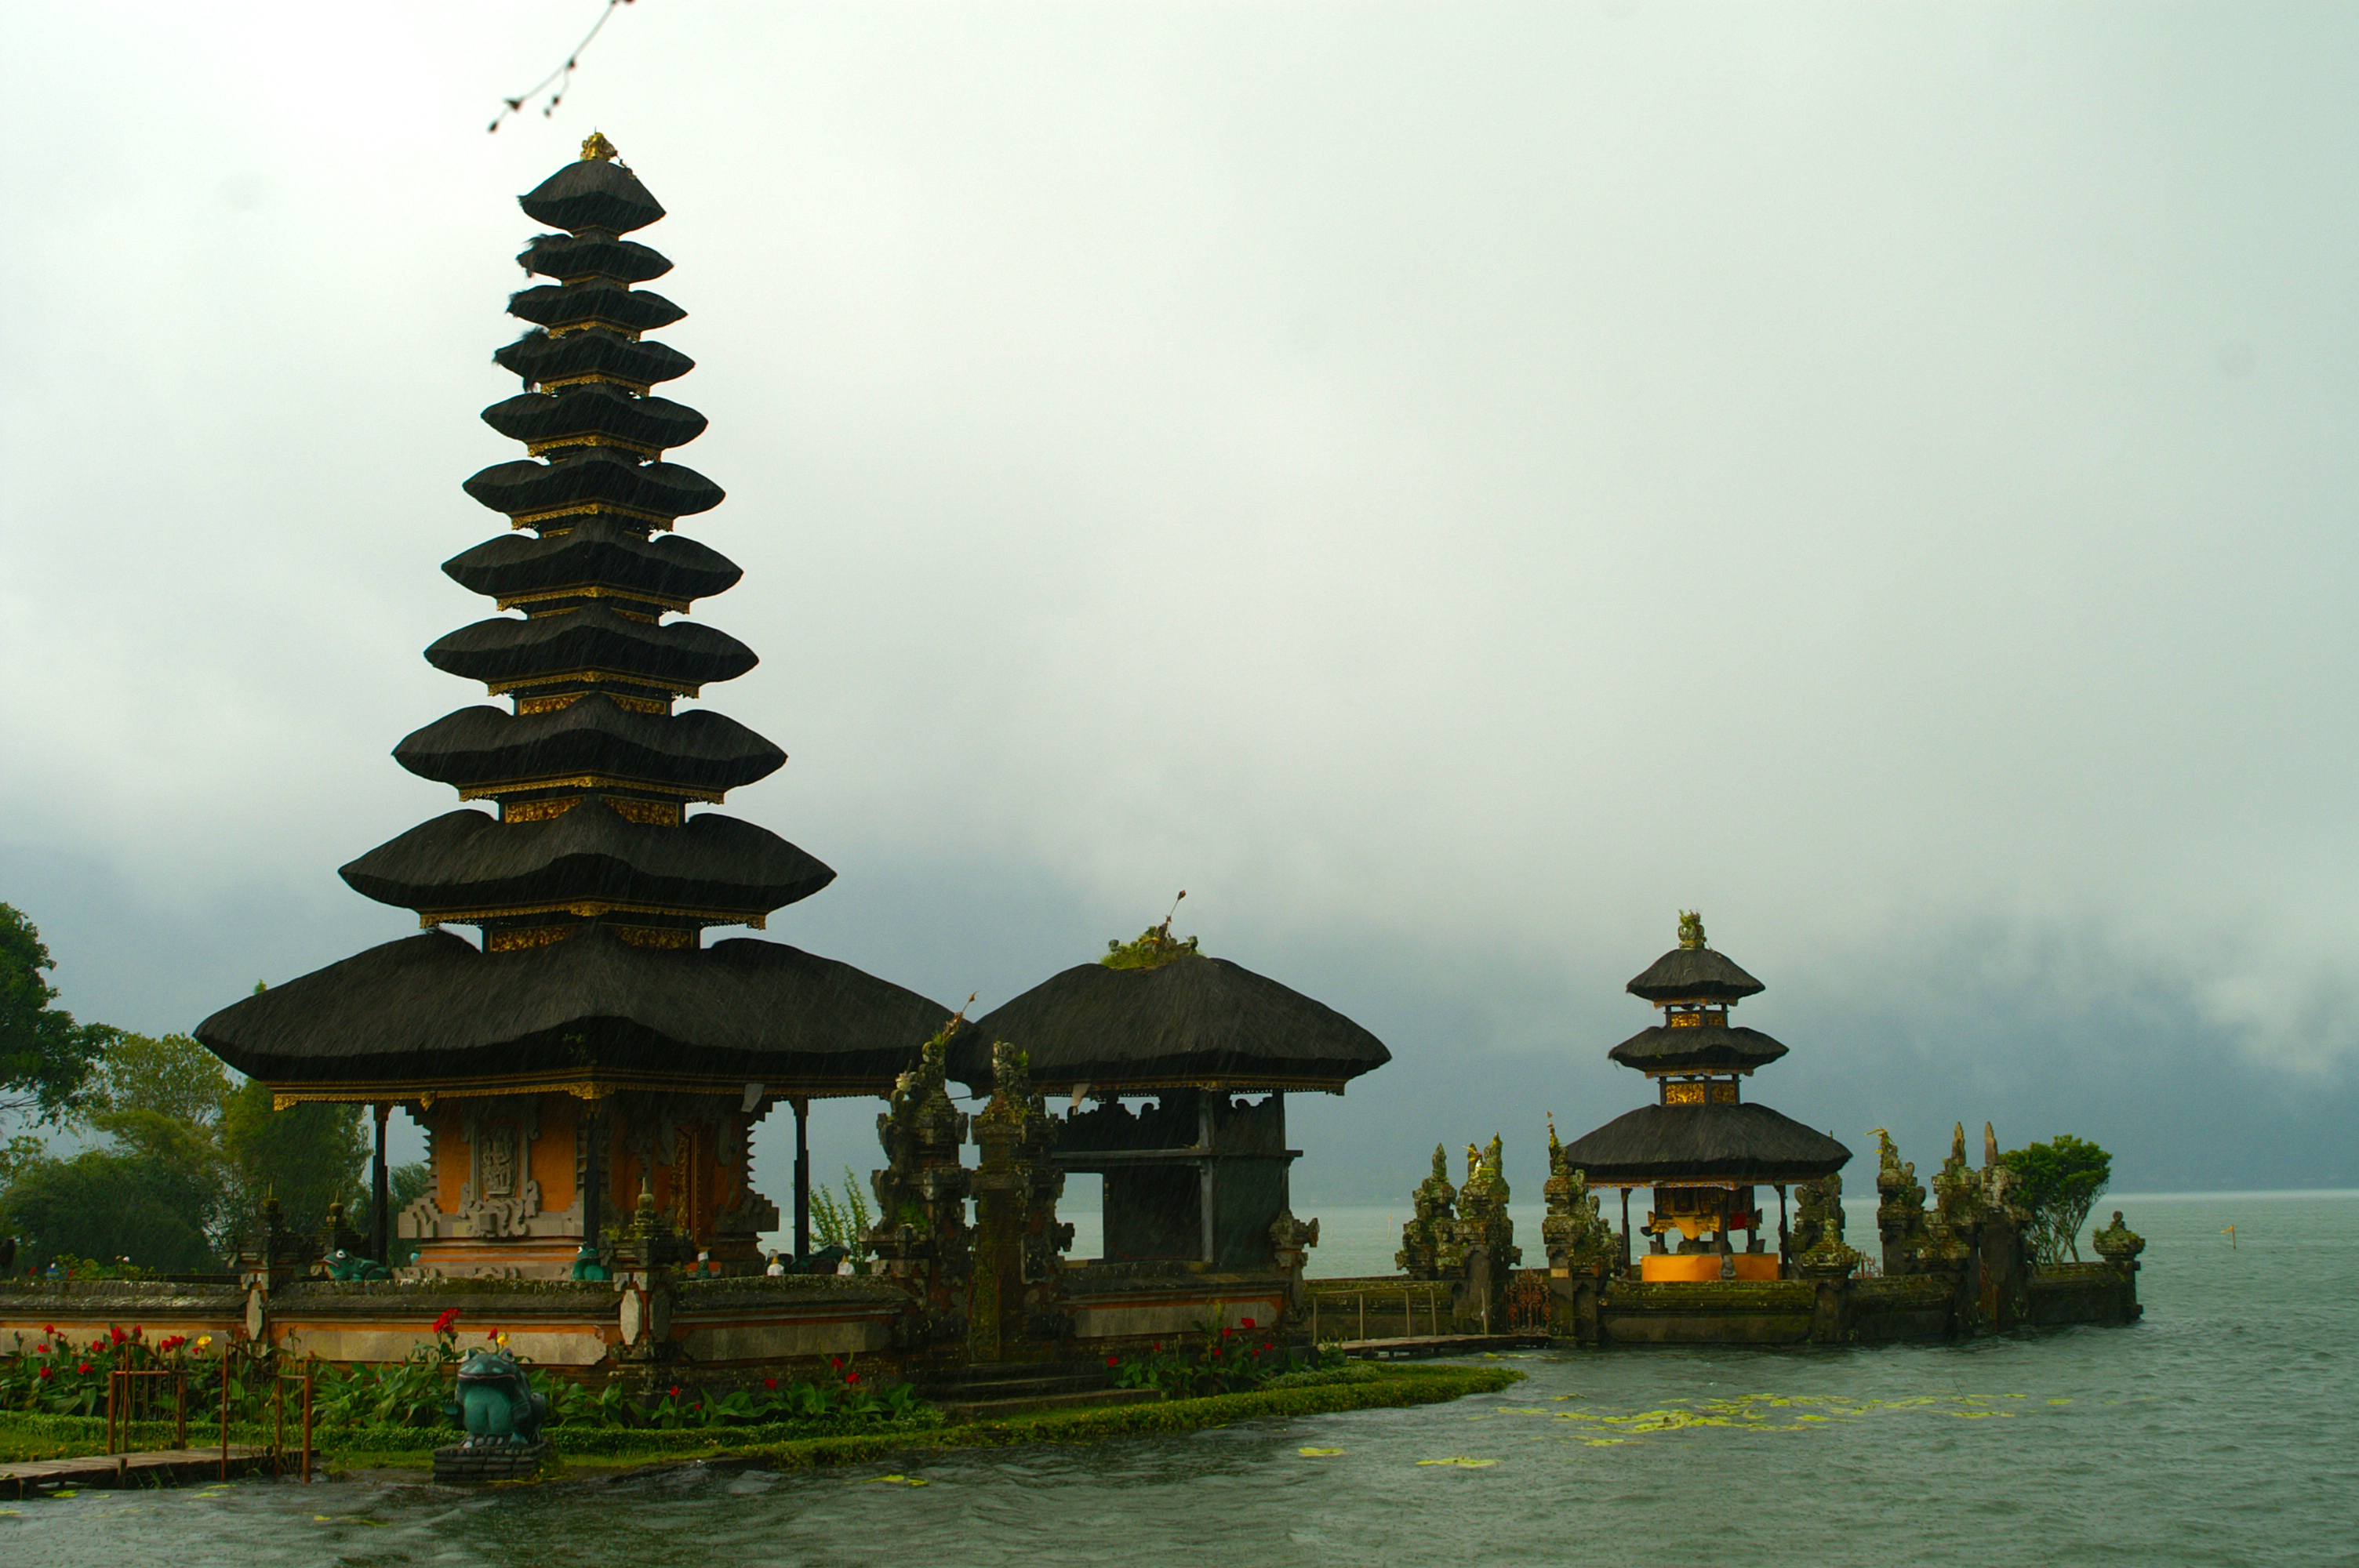 Bali Indonesia Weirdly Beautiful Places 4 Khichdi Online Just About Everything